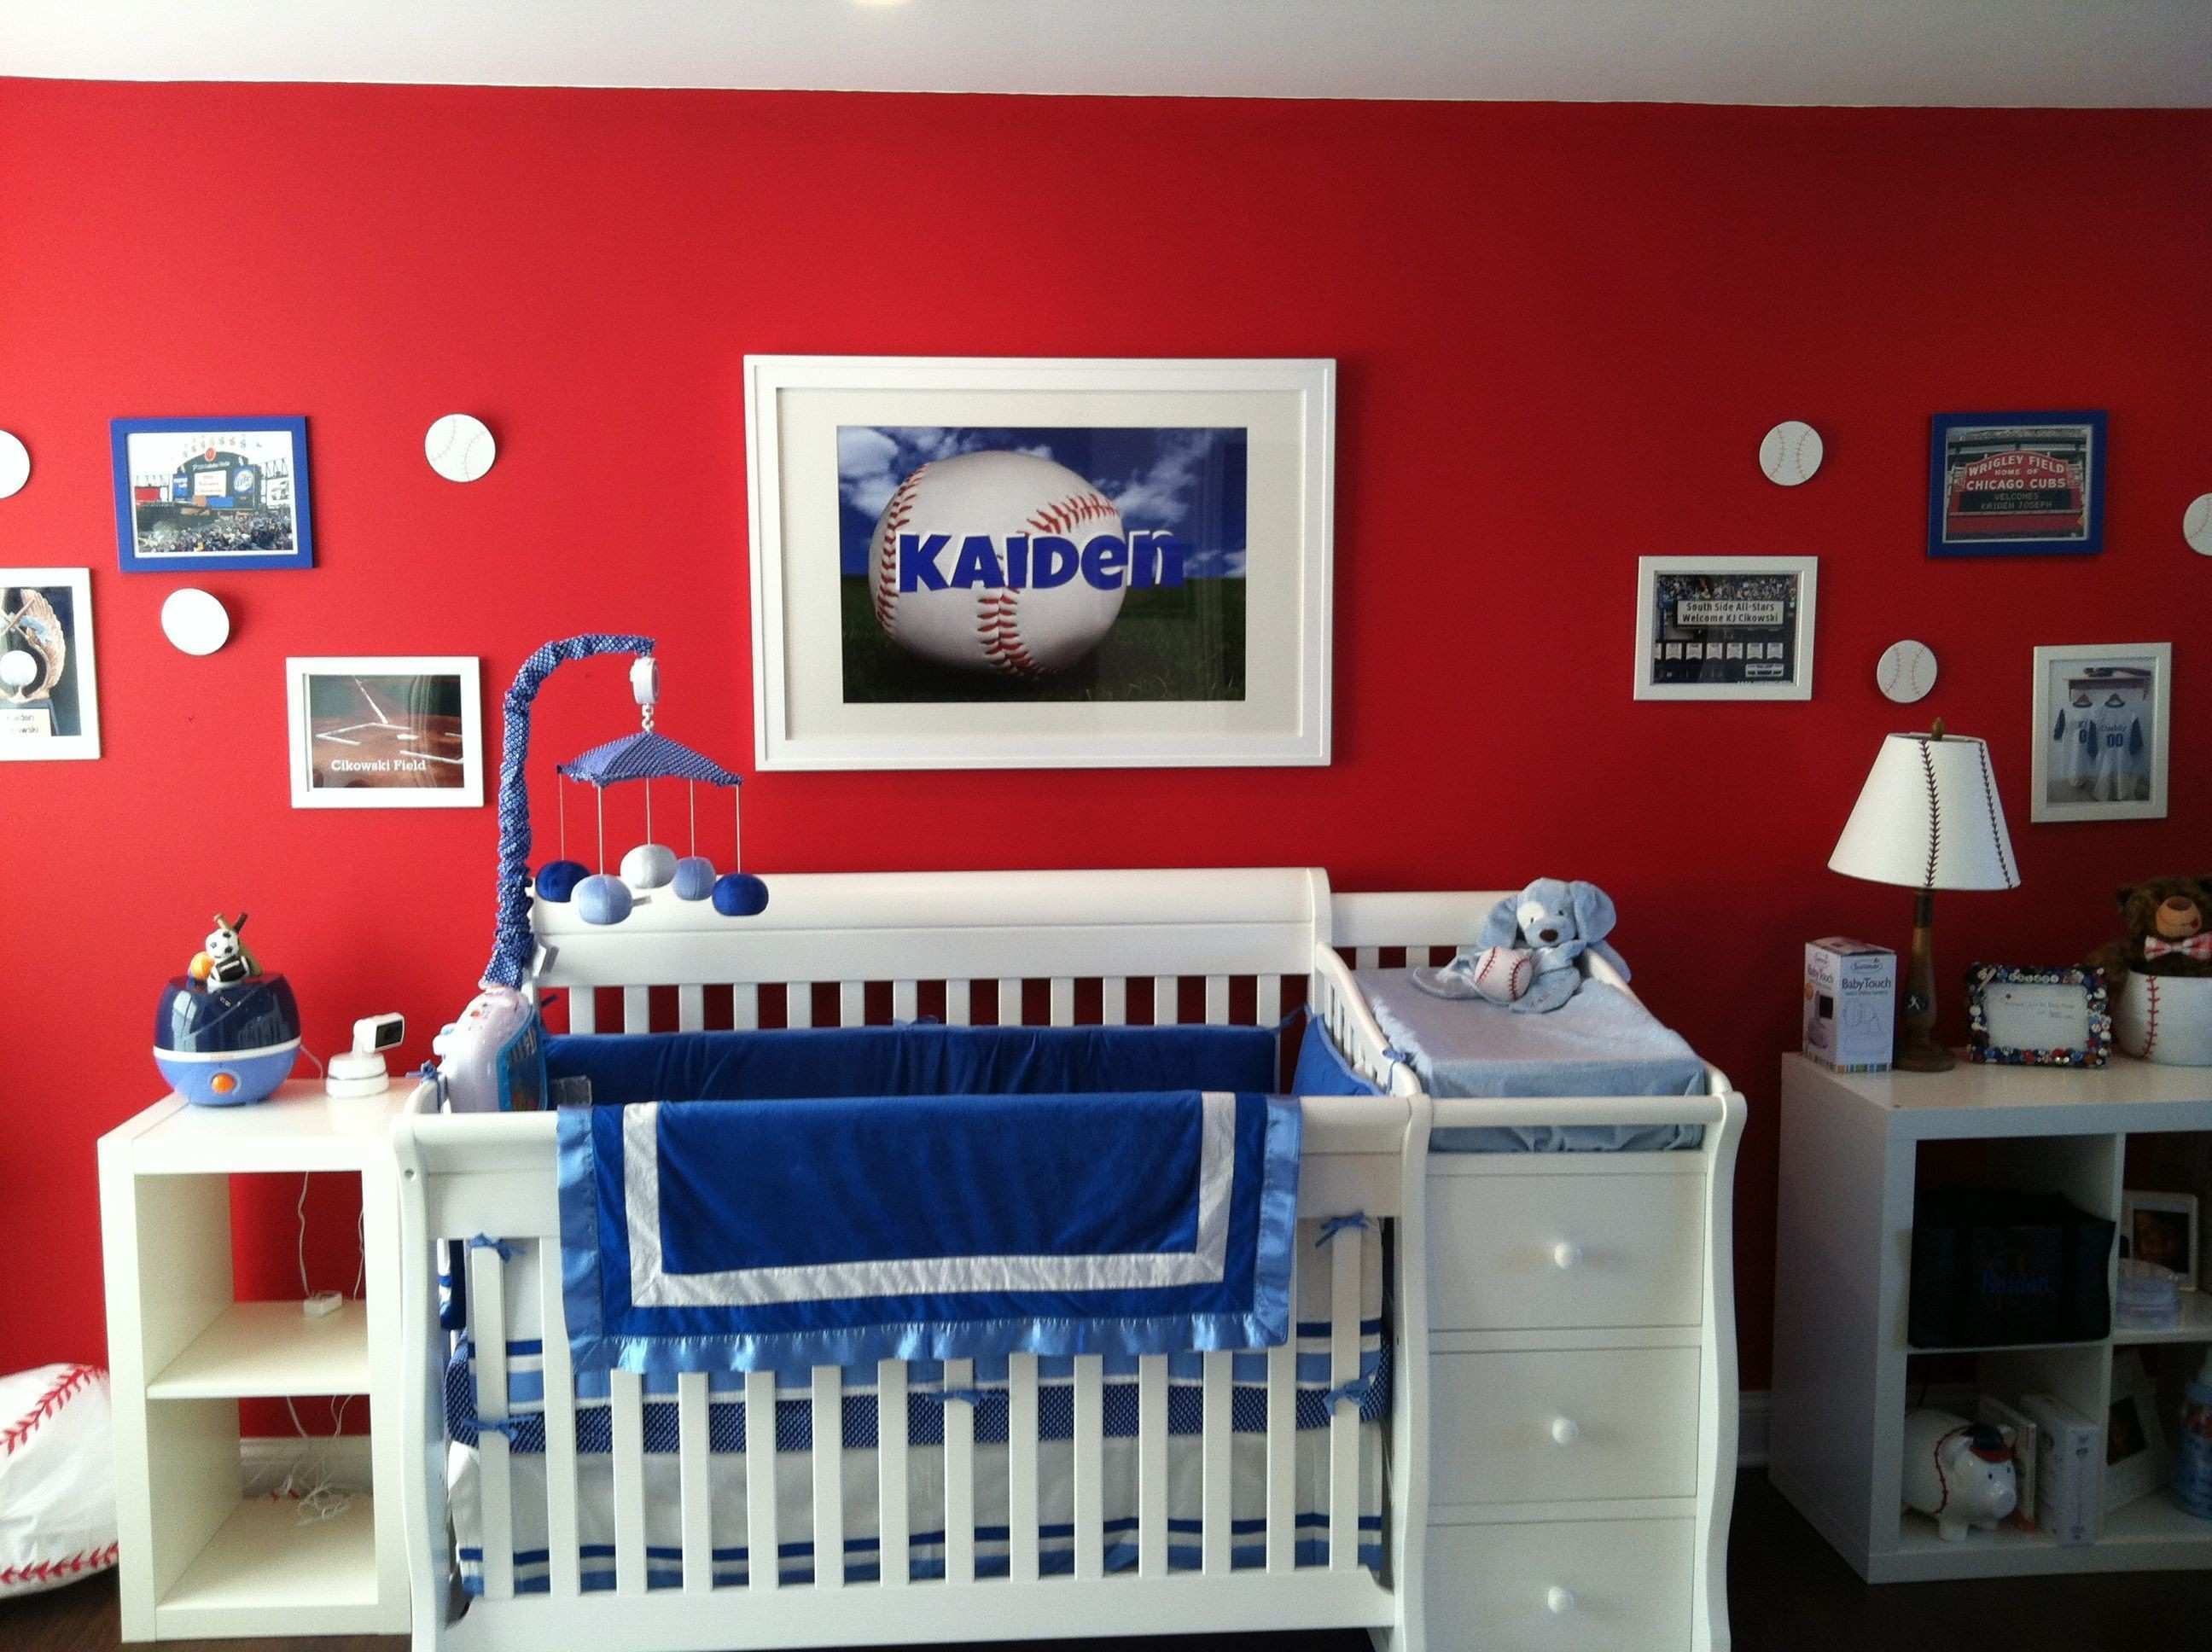 Red And Blue Personalized Baseball Nursery For Baby Kaiden For In